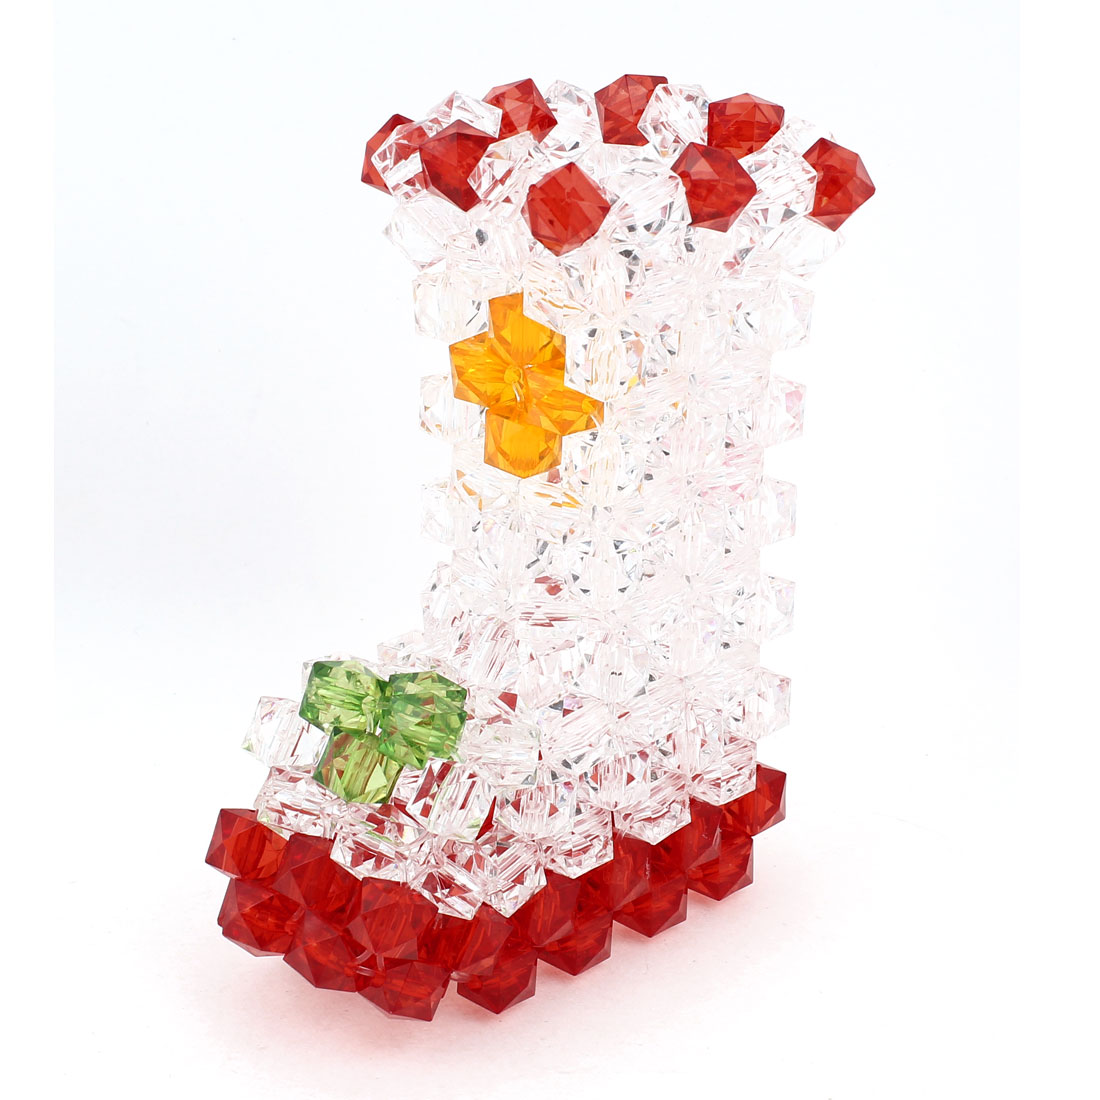 Red Clear Boot Shaped Handcraft Plastic Crystal Beads Vase Craft Home Ornaments 5.1""